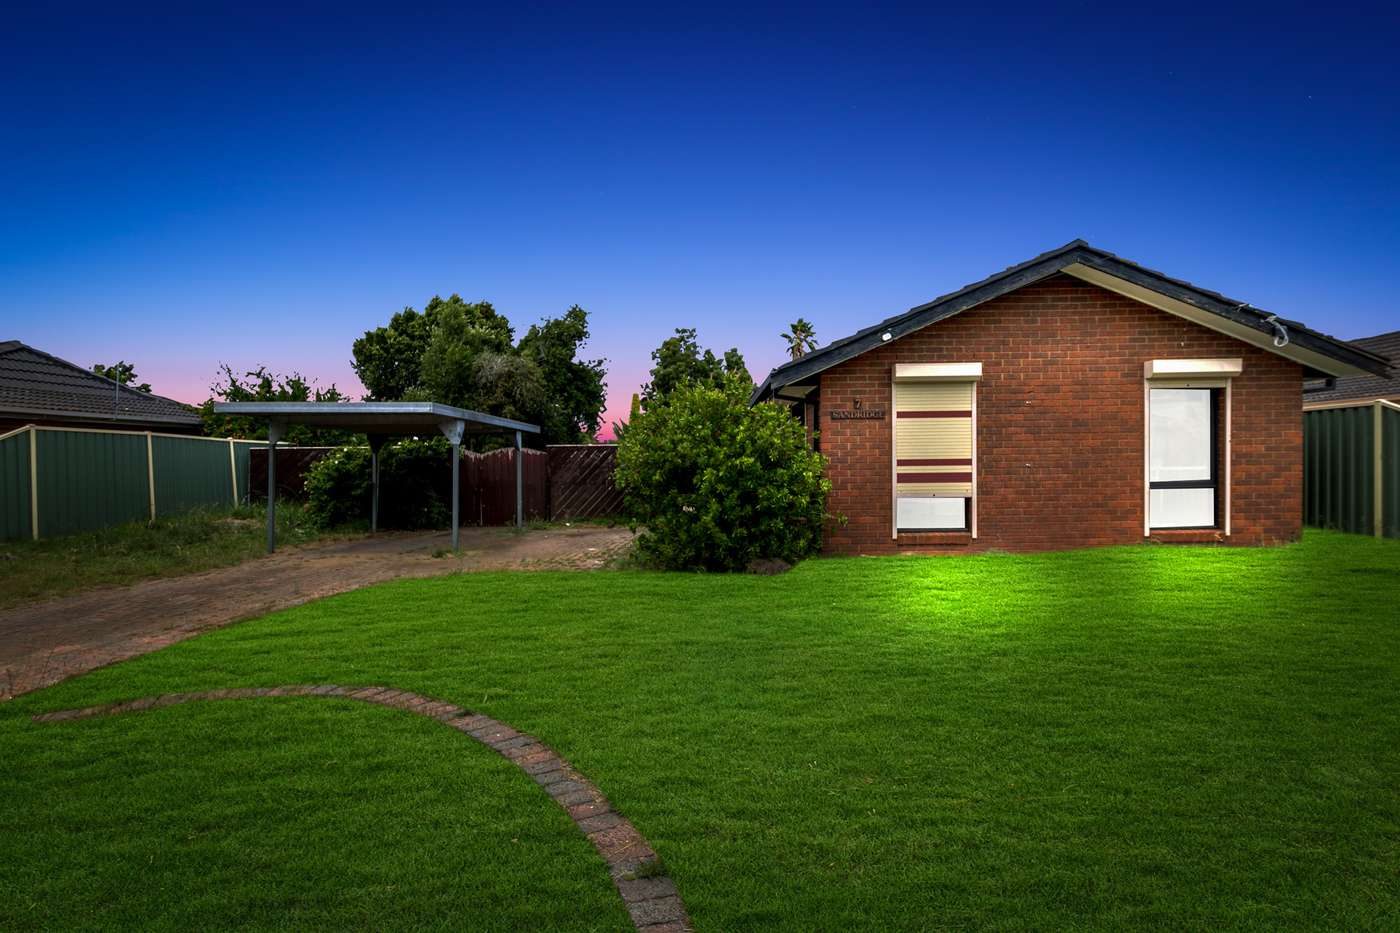 Main view of Homely house listing, 7 Shearer Close, Hoppers Crossing, VIC 3029